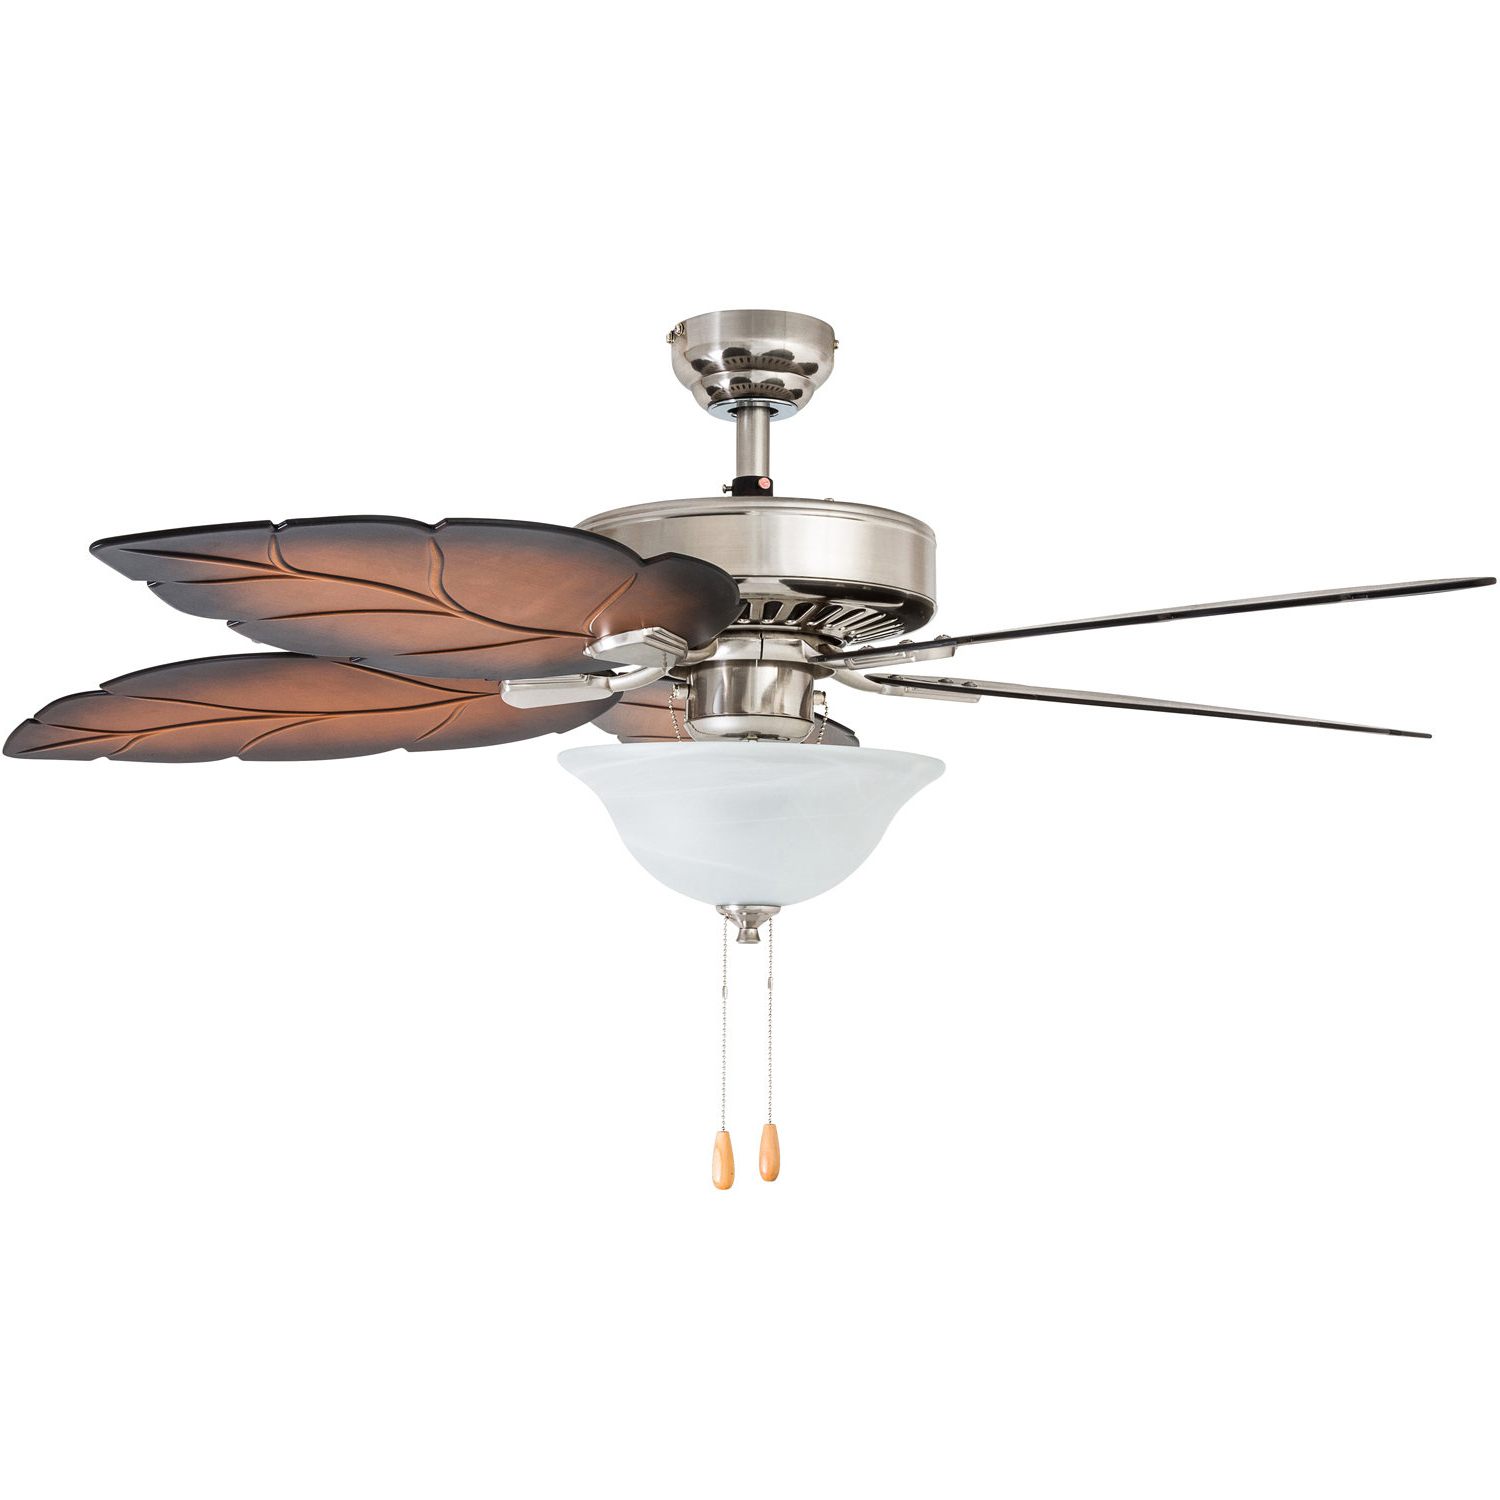 "Eliora 5 Blade Ceiling Fans Within 2020 52"" Monterry 5 Blade Led Ceiling Fan (View 16 of 20)"